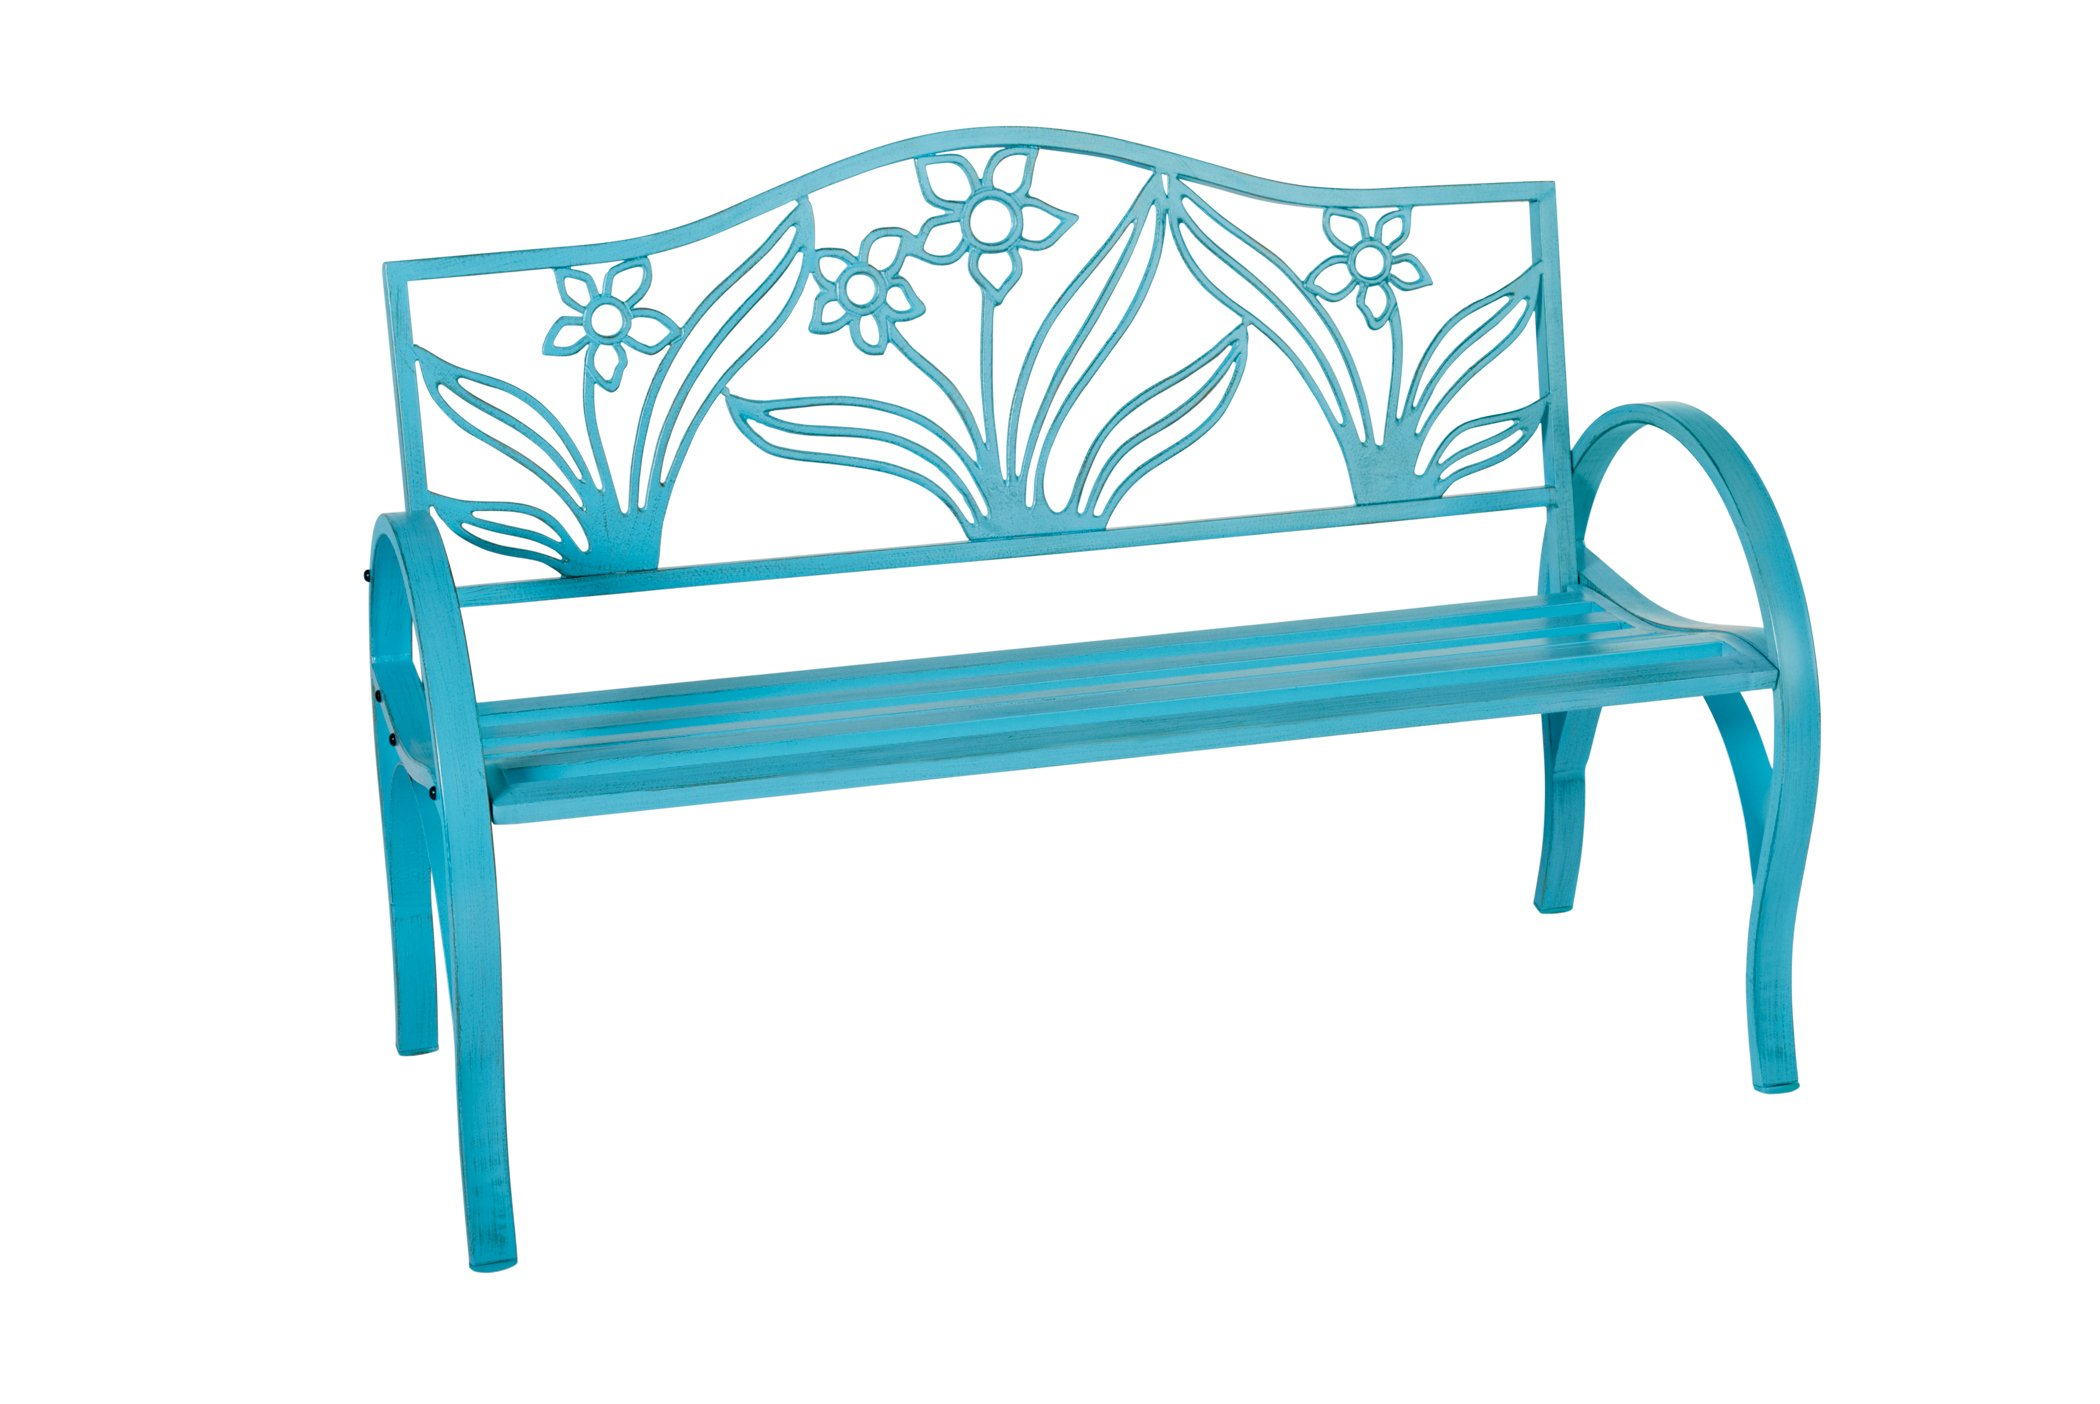 Outdoor Solutions Teal Flower Steel Park Bench Shop Furniture at HEB